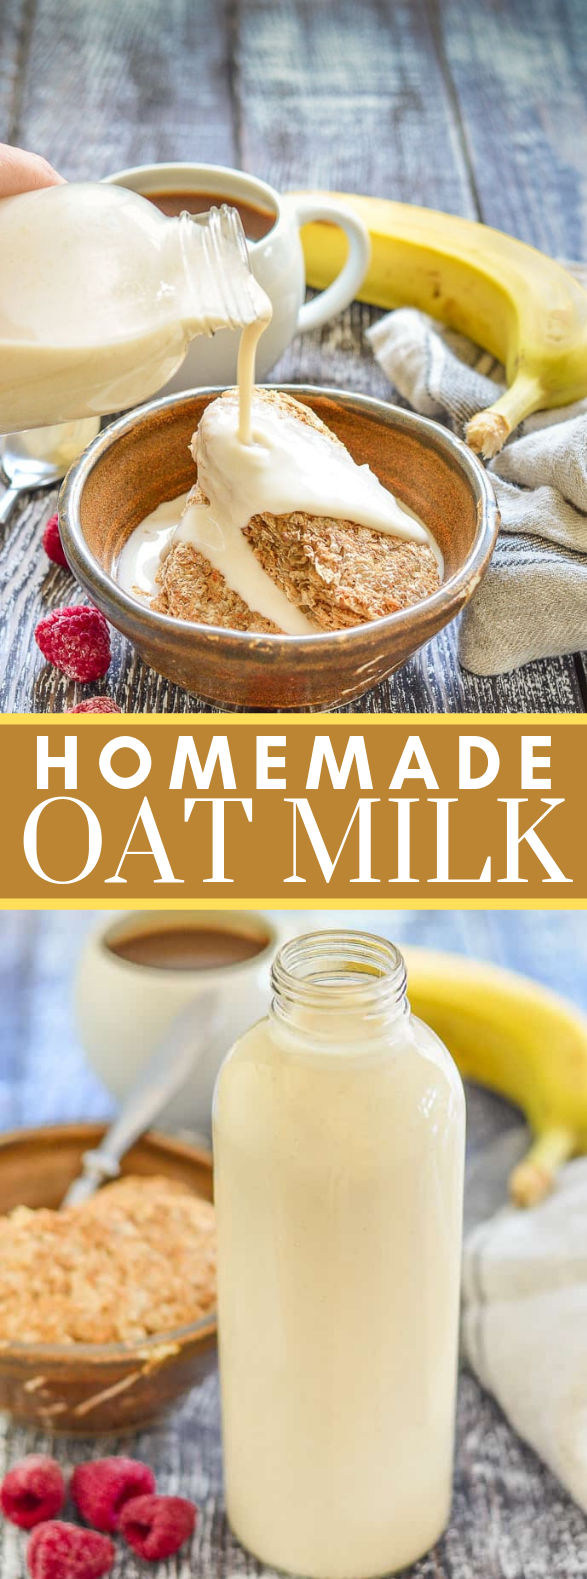 Homemade Oat Milk #glutenfree #vegan